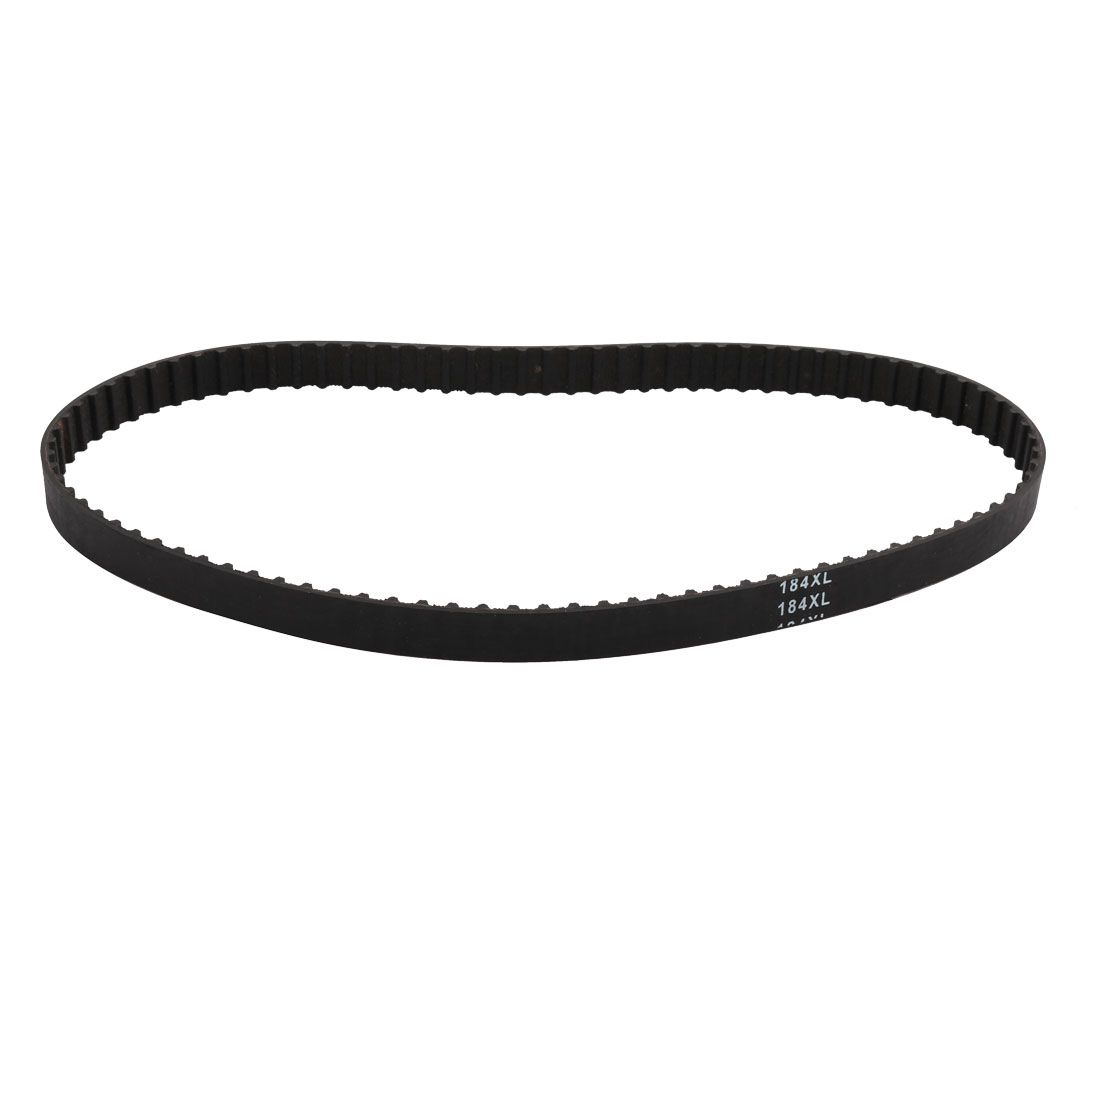 184XL 92 Teeth 10mm Width 5.08mm Pitch Stepper Motor Rubber Timing Belt Black